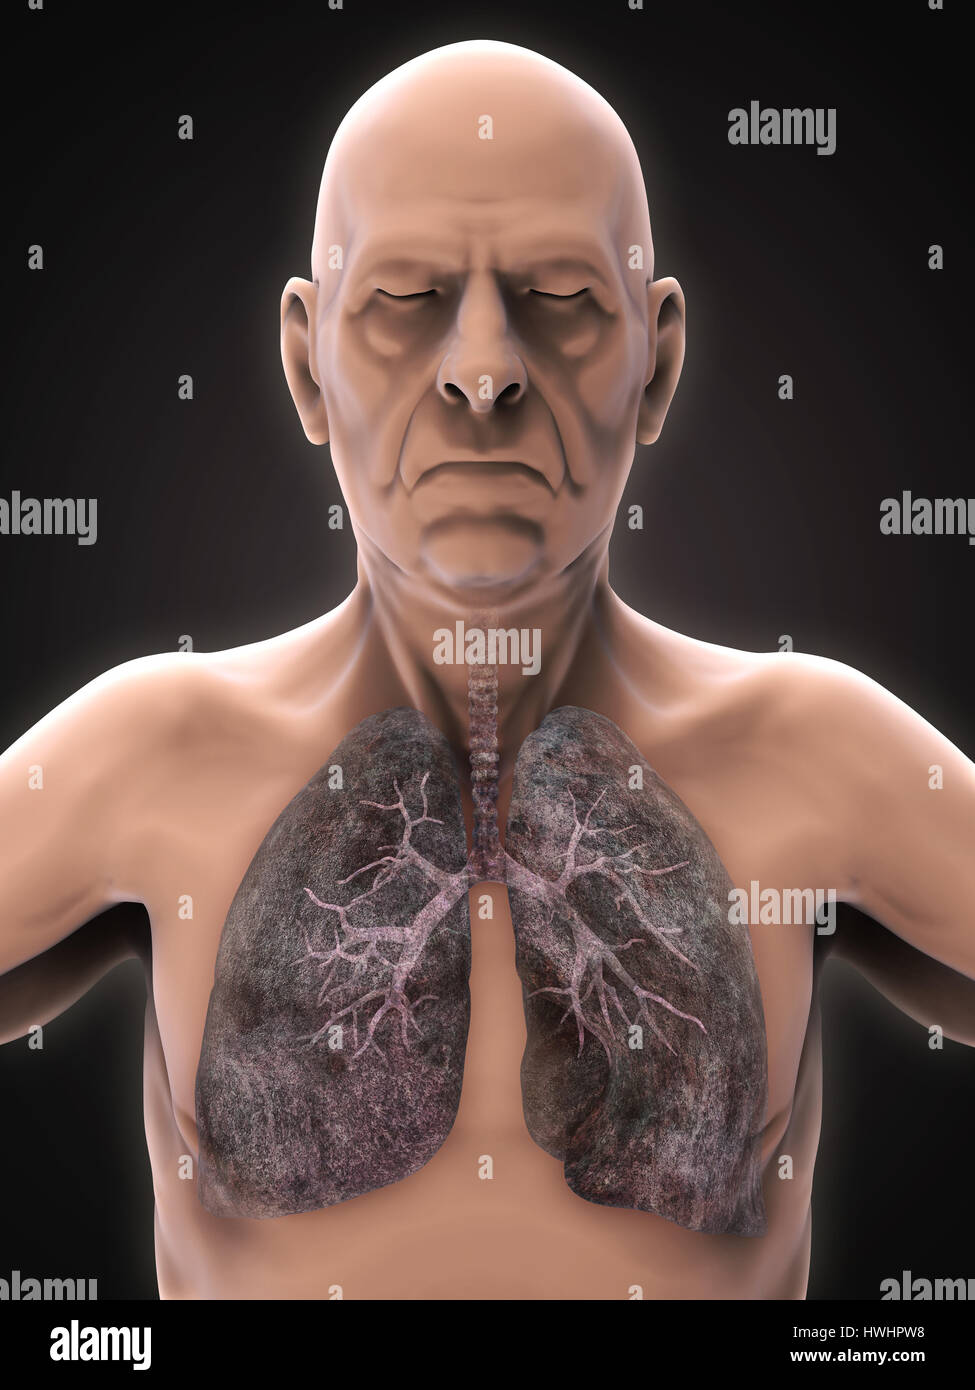 Elderly Male with Lung Cancer Illustration - Stock Image